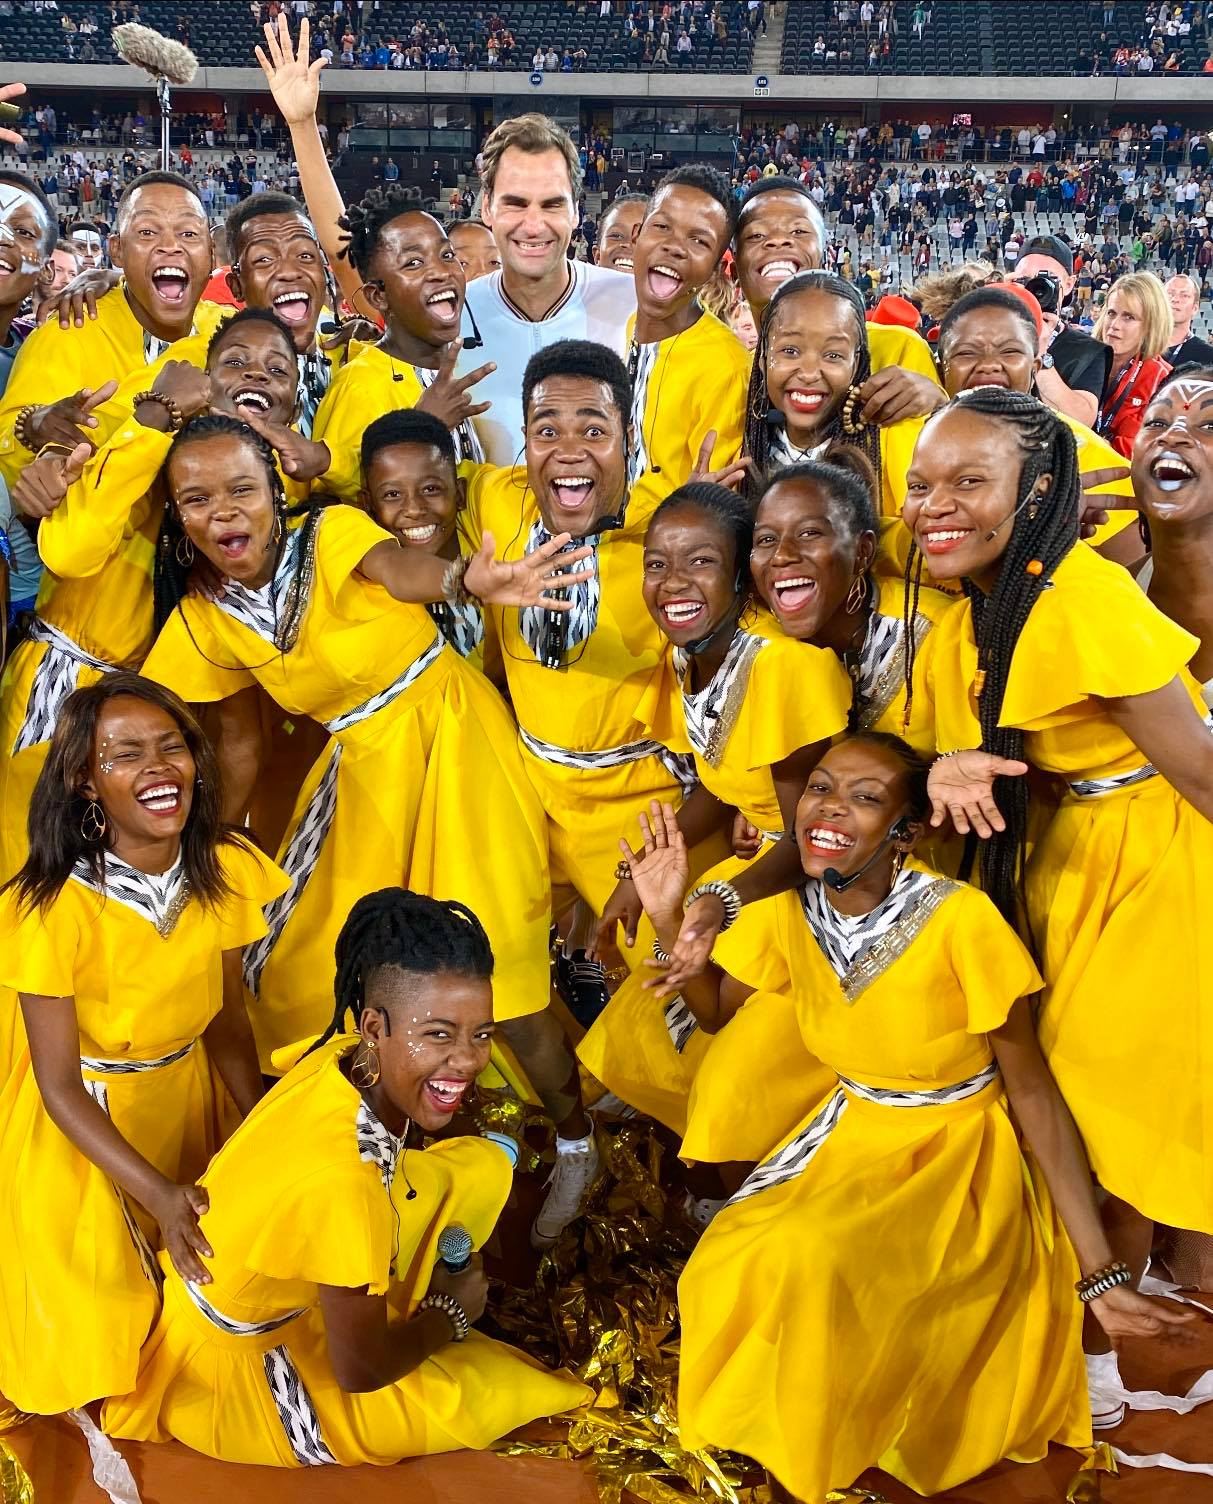 NDLOVU YOUTH CHOIR Photo